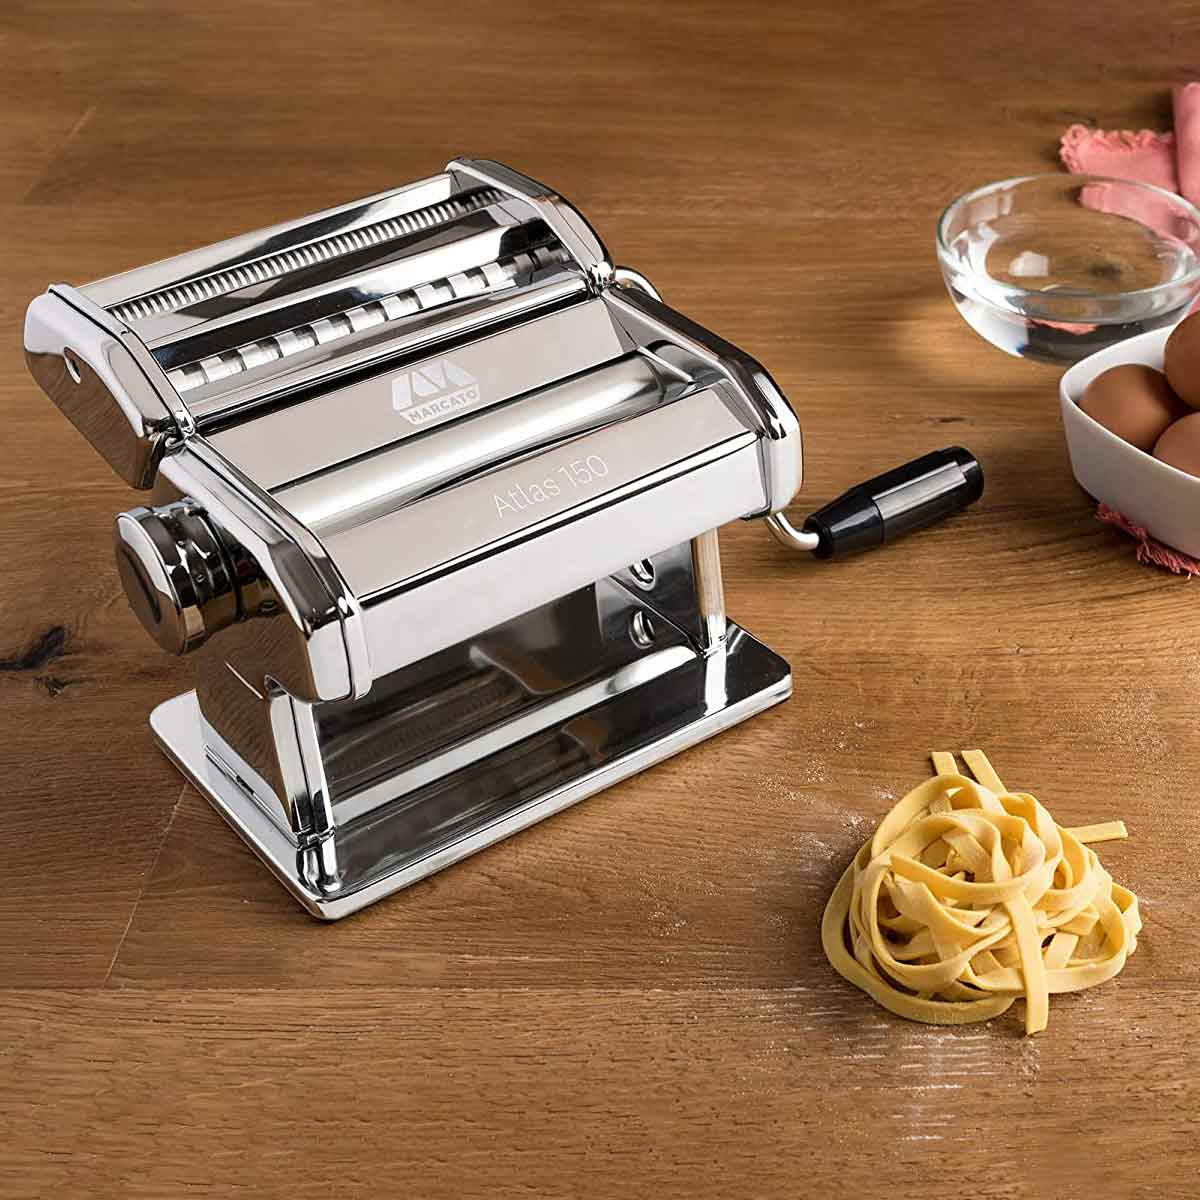 Marcato Atlas 10 Pasta Machine on wood counter with eggs and pasta nest.